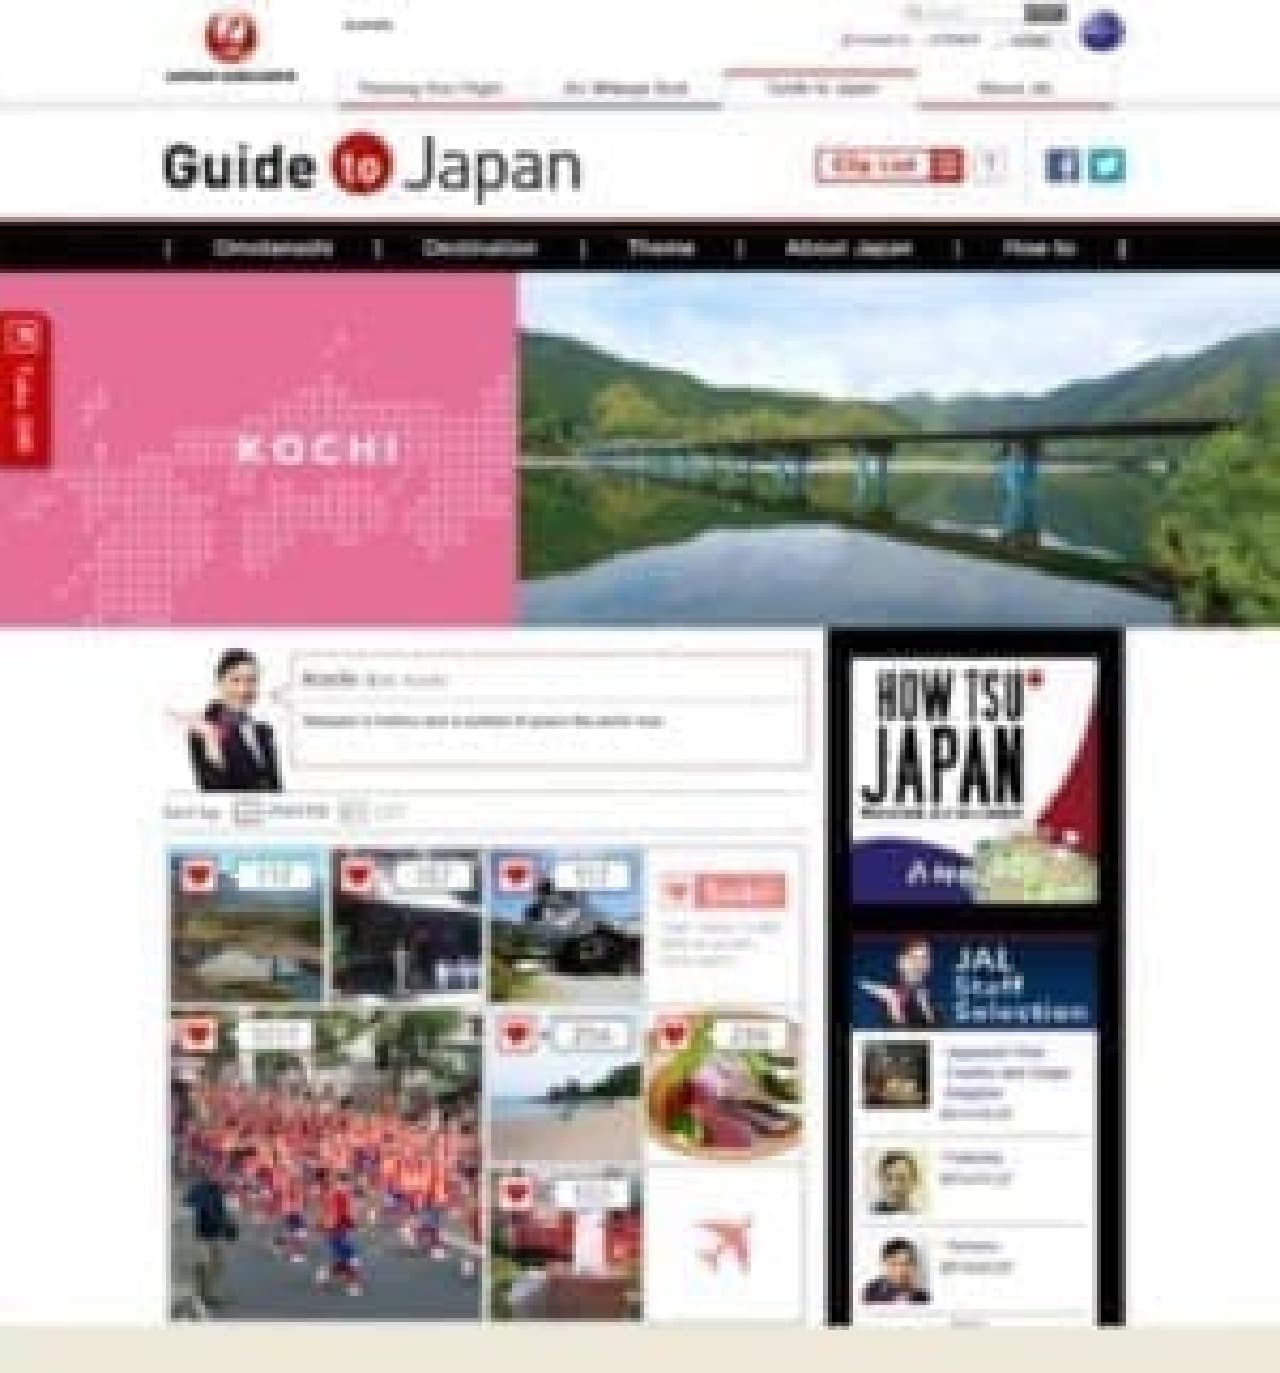 JAL Guide to Japan 高知編イメージ